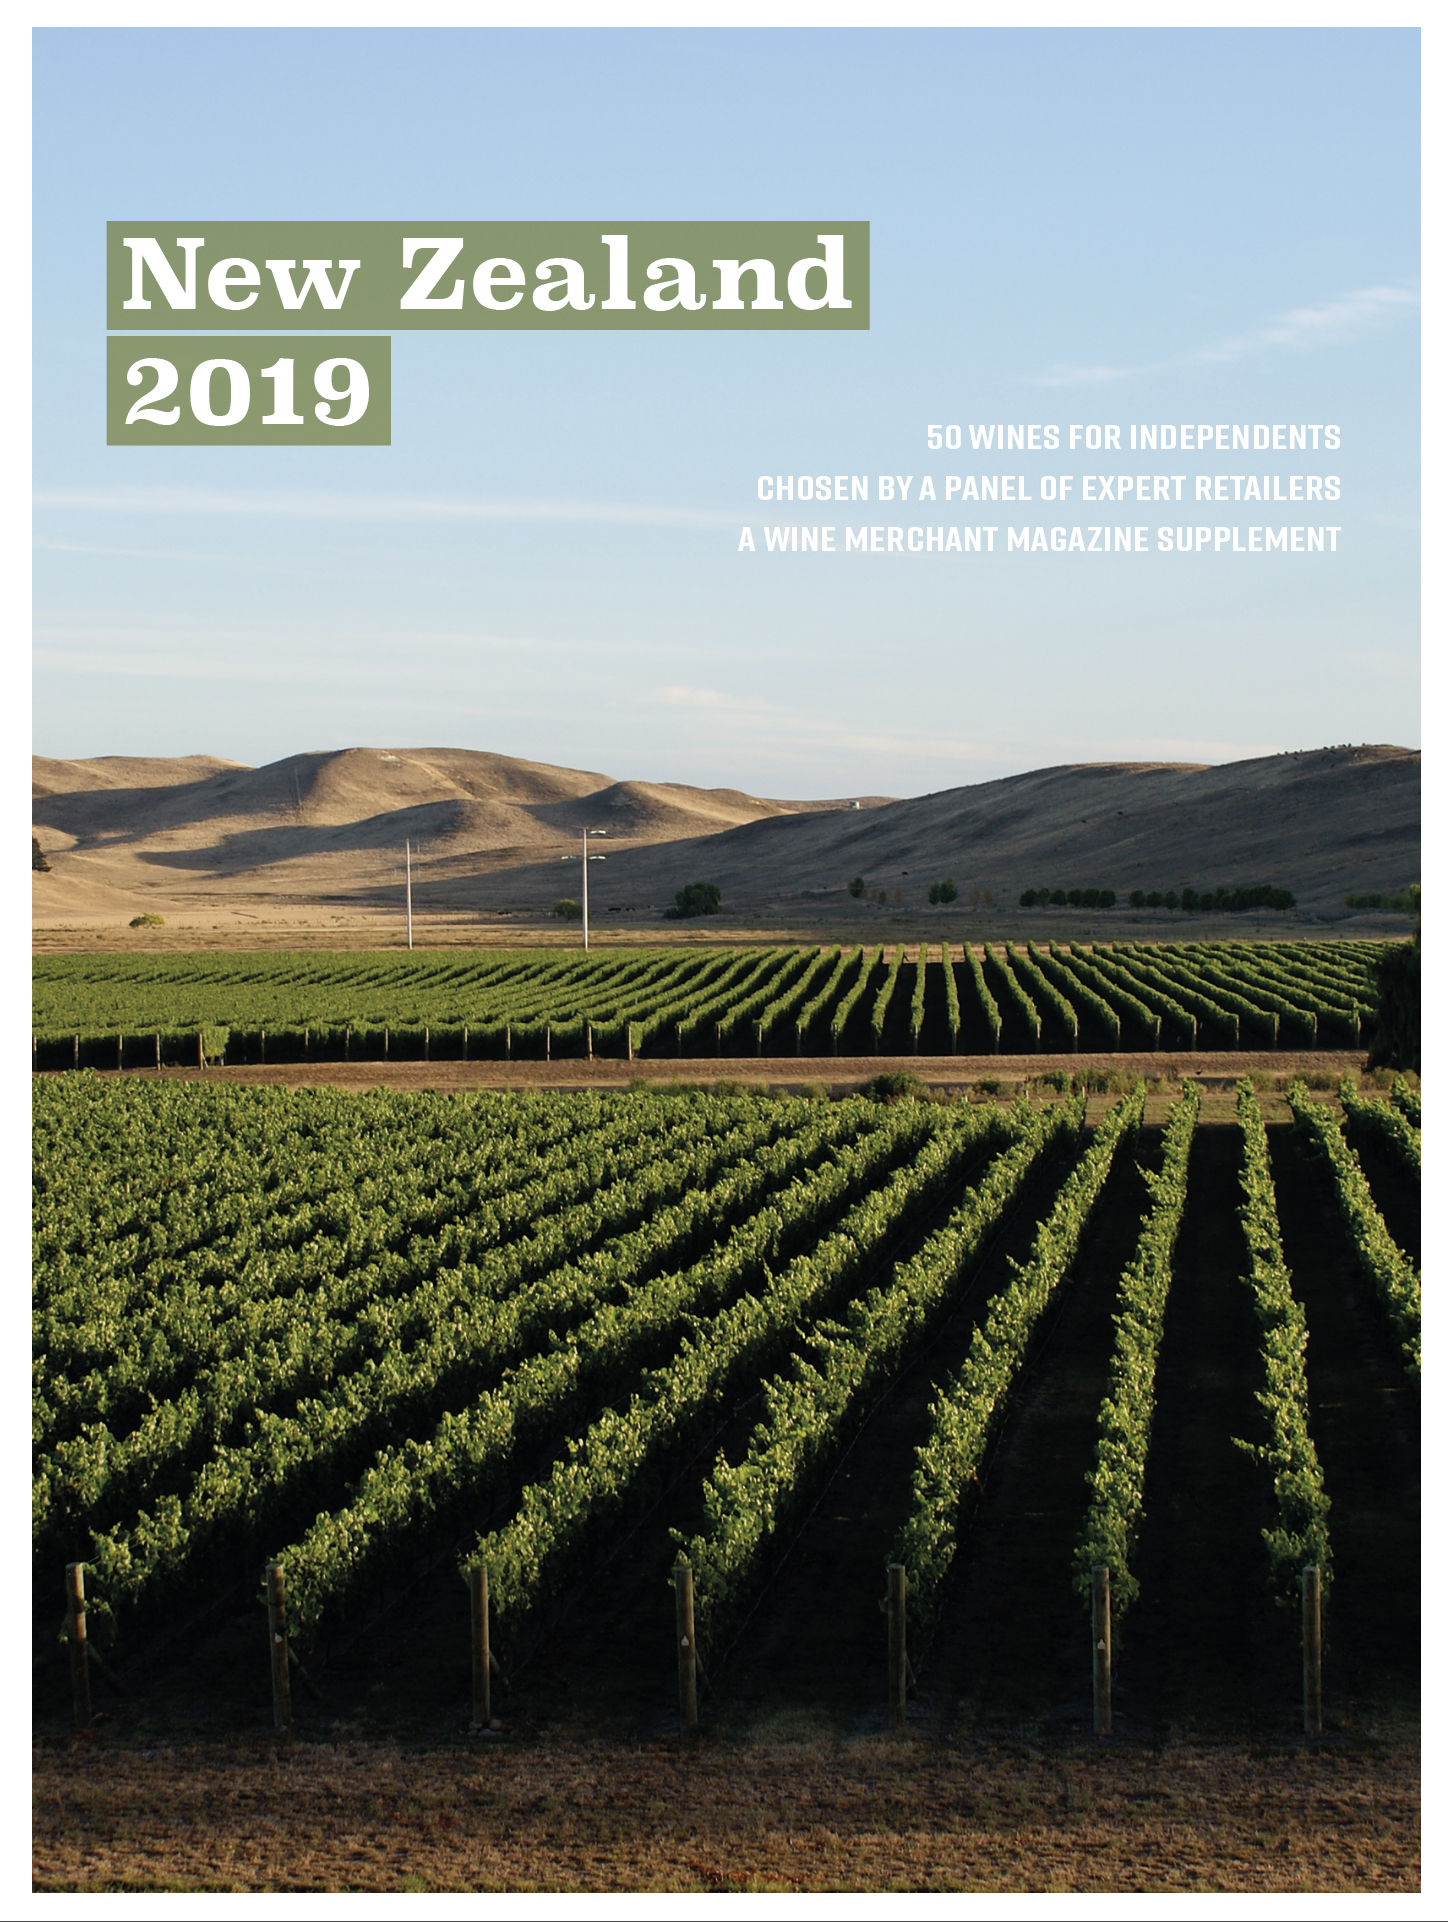 The Wine Merchant New Zealand Supplement 2019 2019